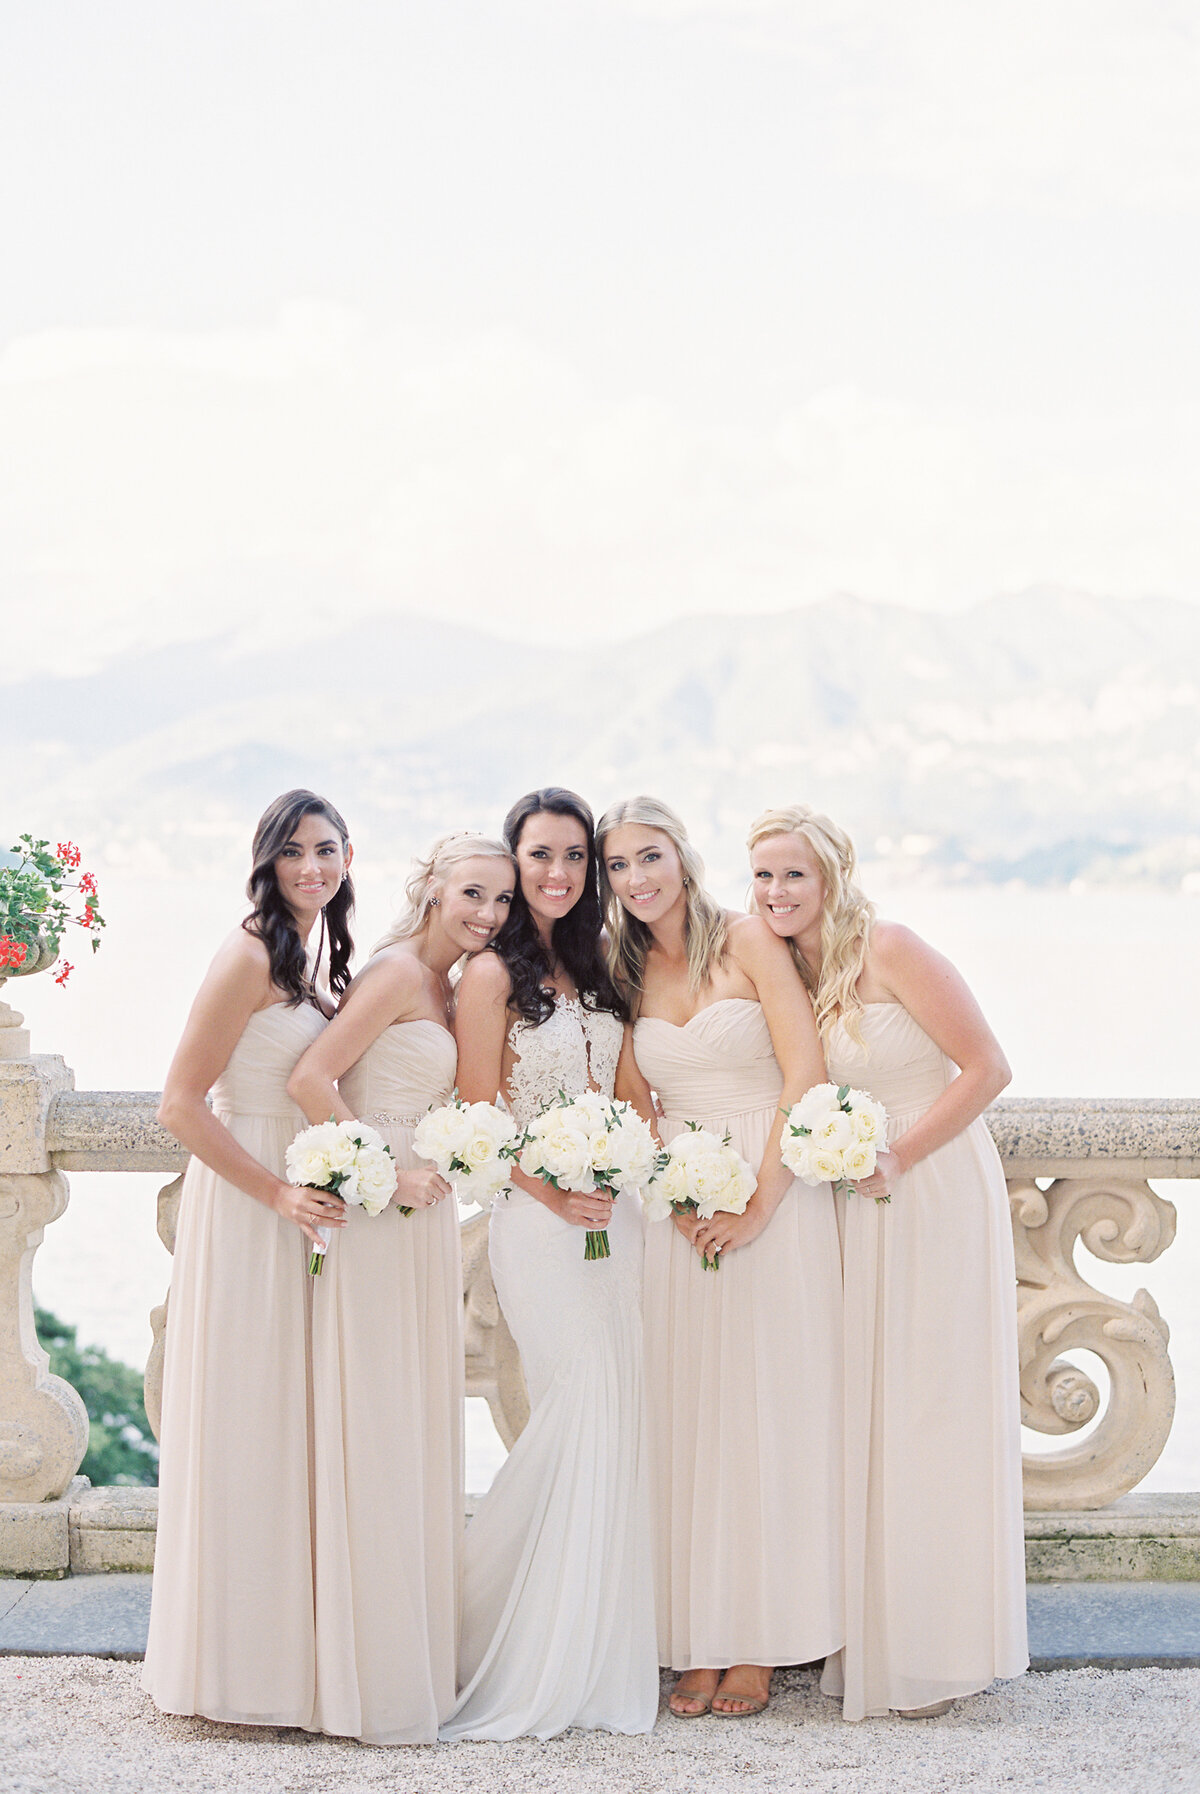 lake-como-italy-destination-wedding-melanie-gabrielle-photogrpahy-483